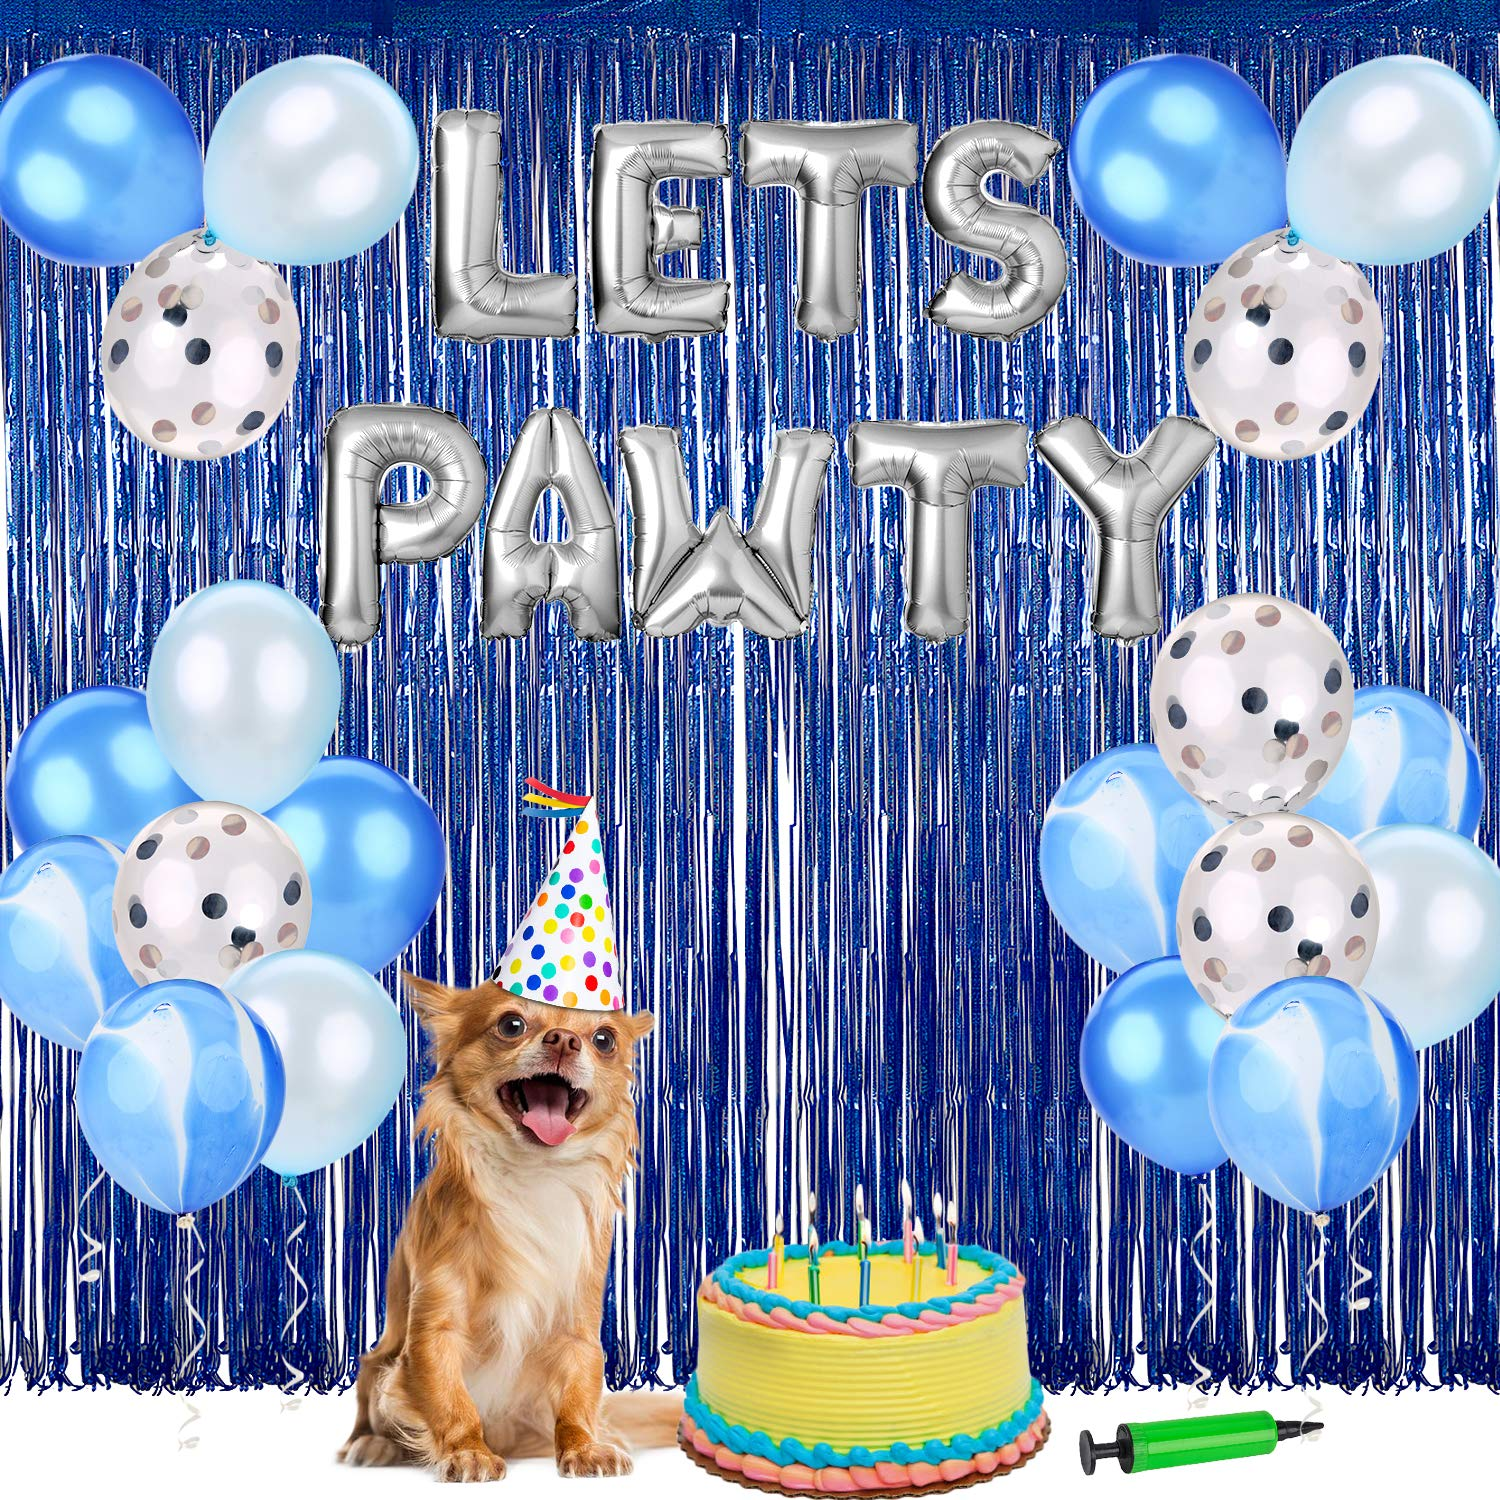 Dog Birthday Party Supplies,Pet Birthday Decorations Set, Lets Pawty Balloons,Happy Birthday Banner, Confetti Balloons for Pet Party Decoration Set (Blue)